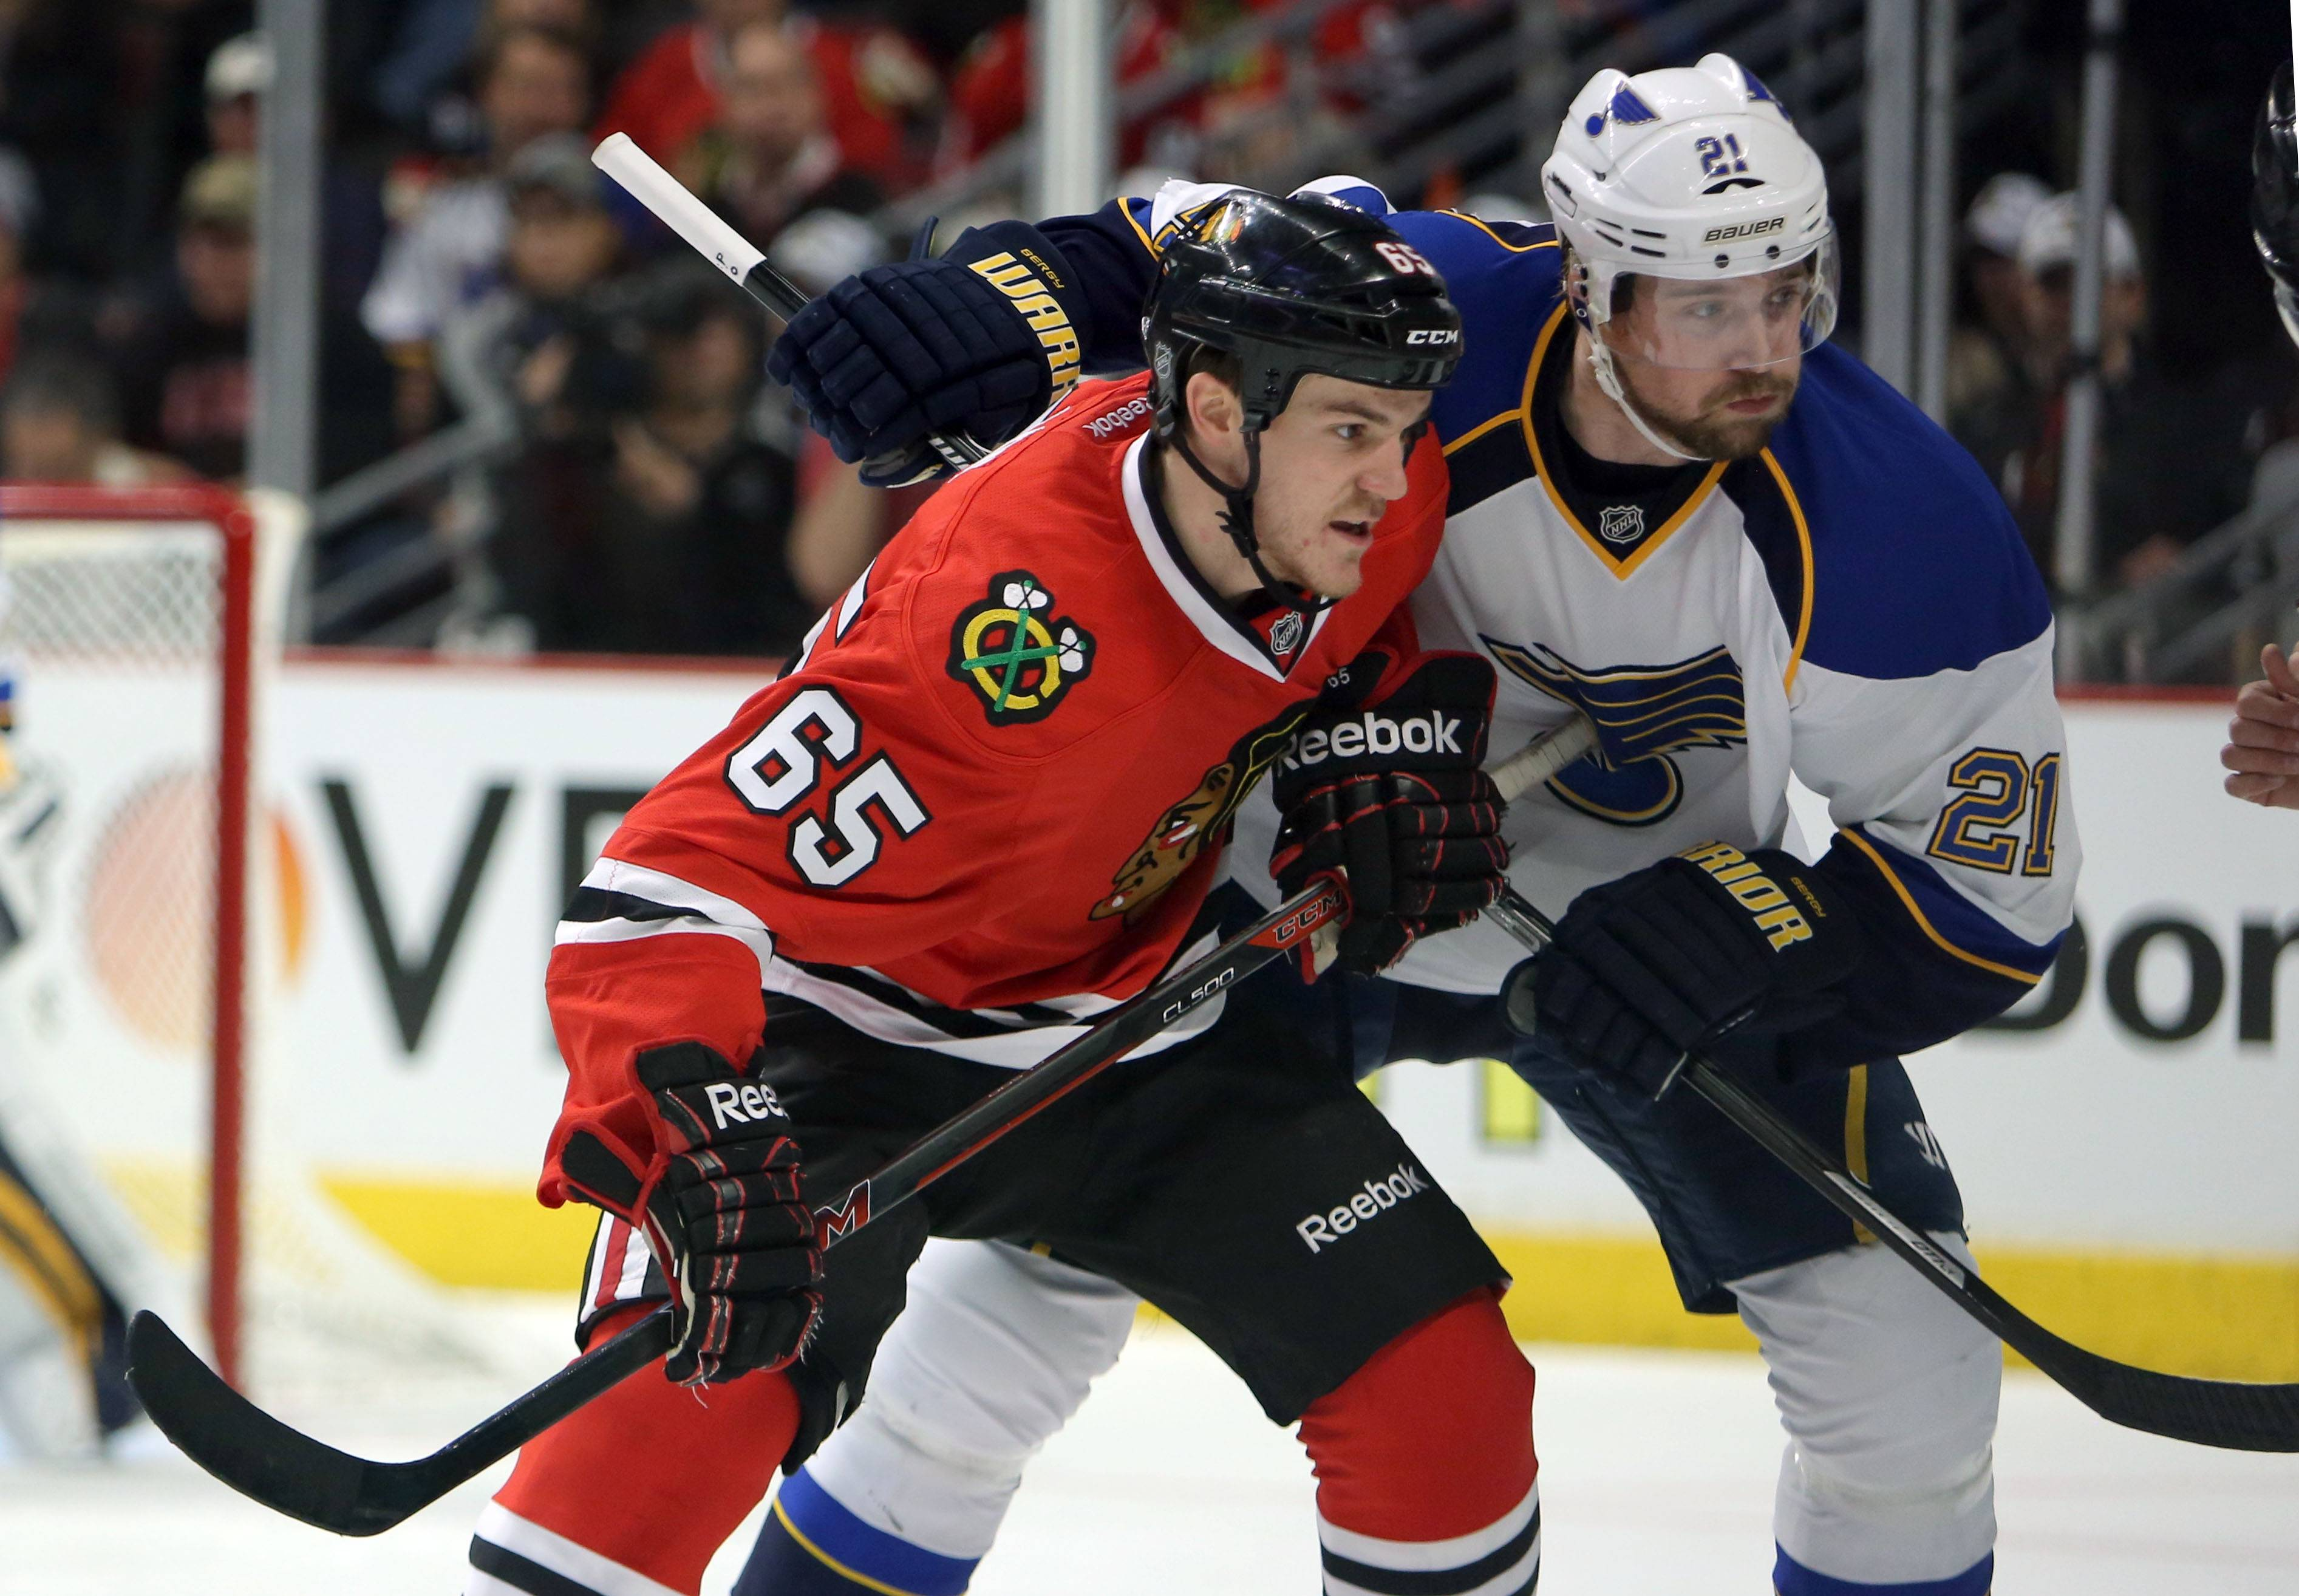 Andrew Shaw, here battling with the Blues' Patrik Berglund during the first round of the playoffs, is scheduled to play Saturday night against the Kings.